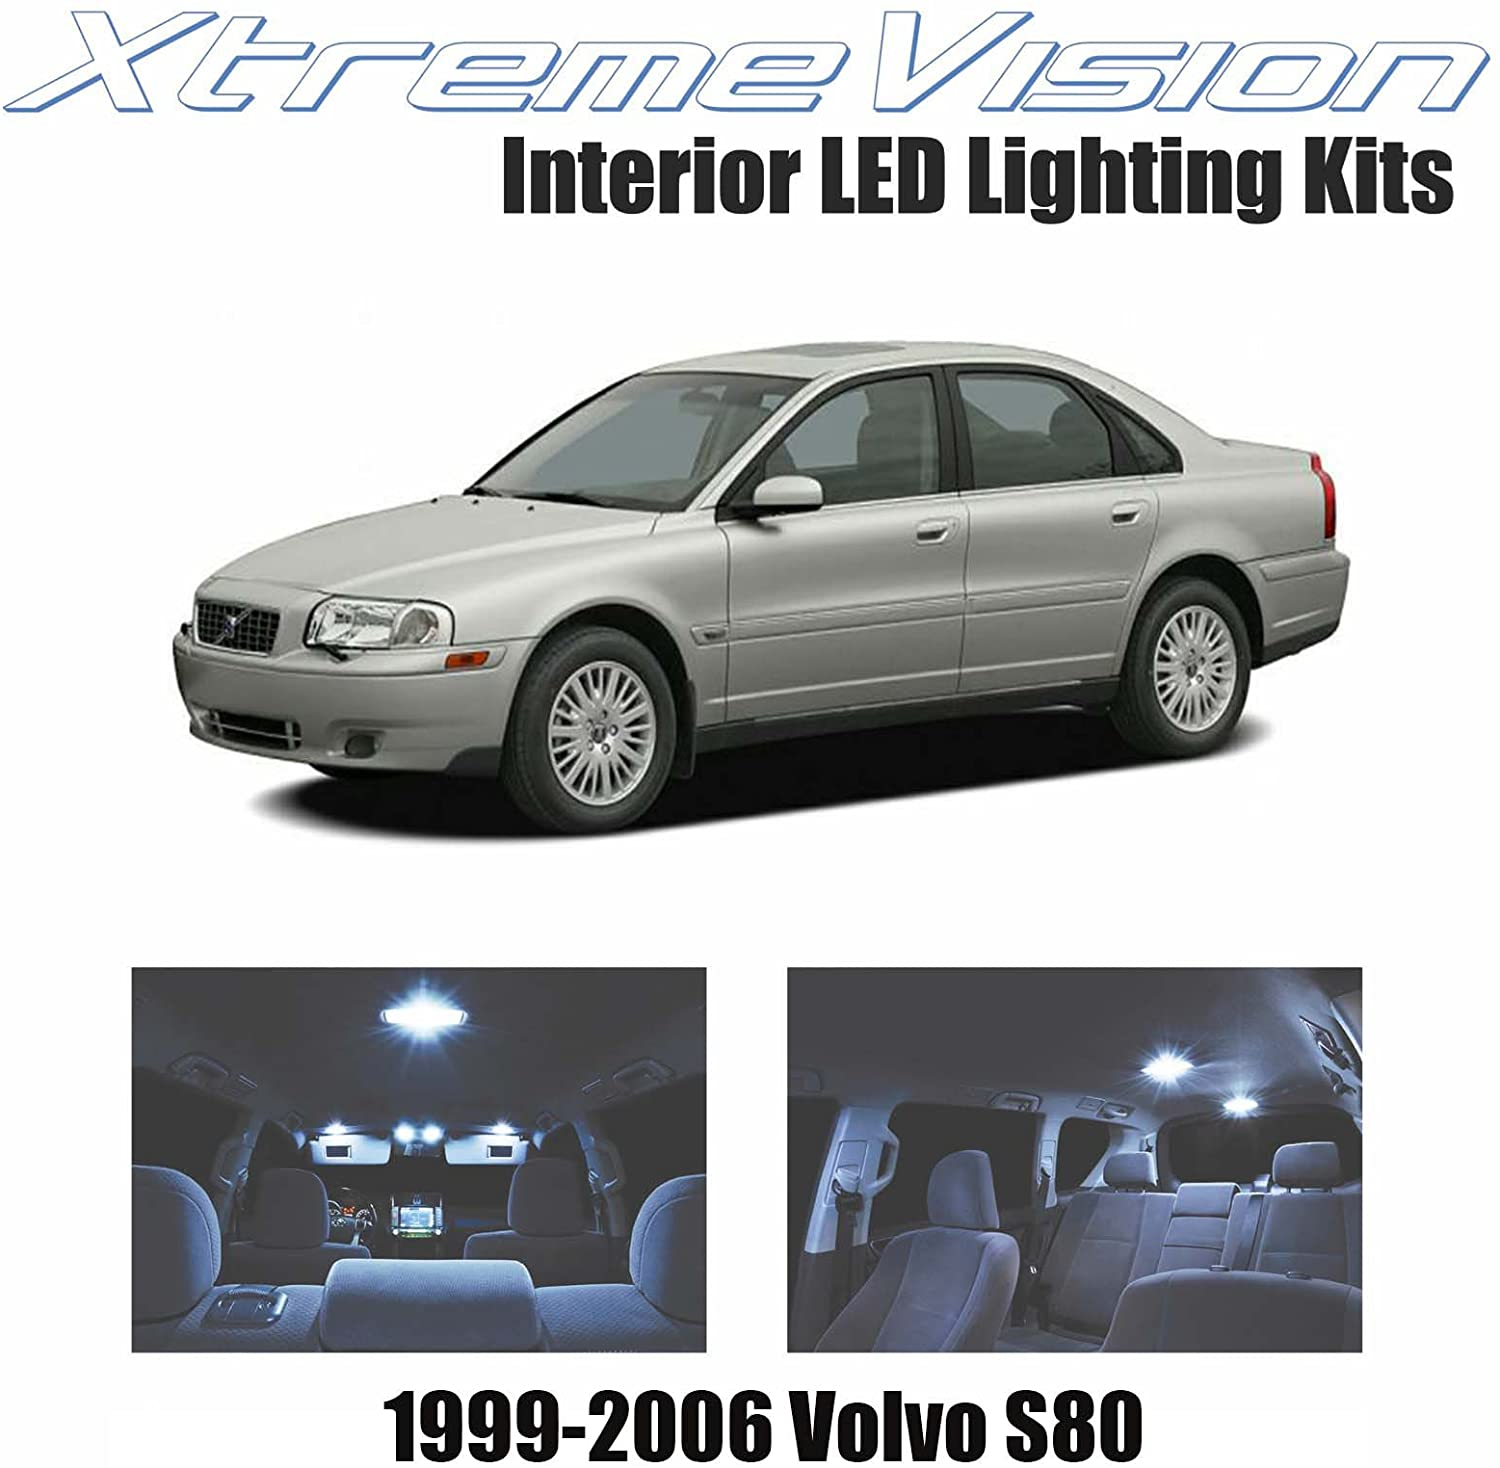 Xtremevision Interior LED for Volvo S80 1999-2006 (12 Pieces) Cool White Interior LED Kit + Installation Tool